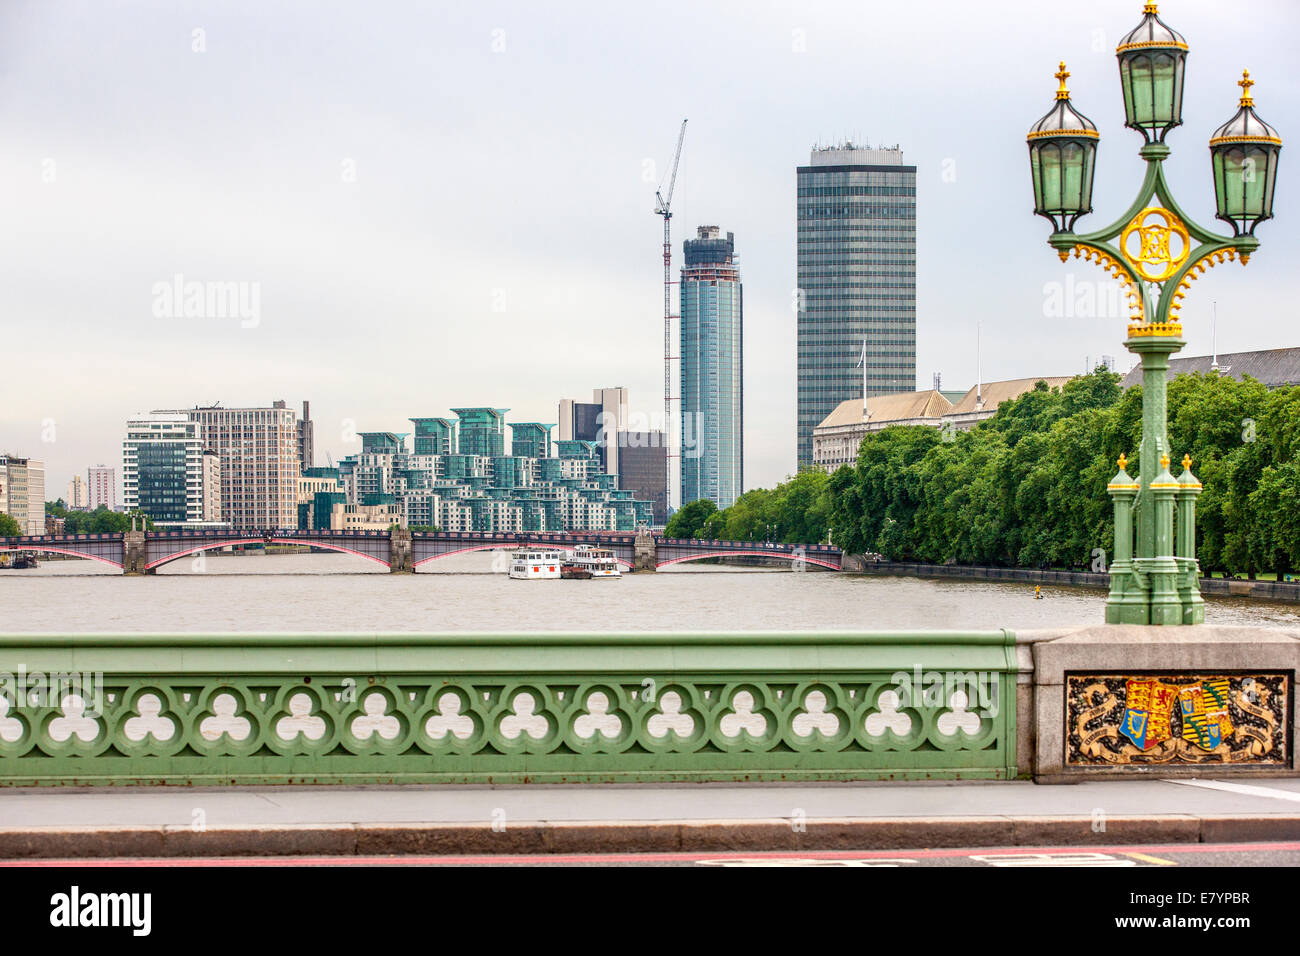 Vauxhaul is a Part of the London area  in the Borough of Lambeth. Taken from Westminster Bridge. - Stock Image